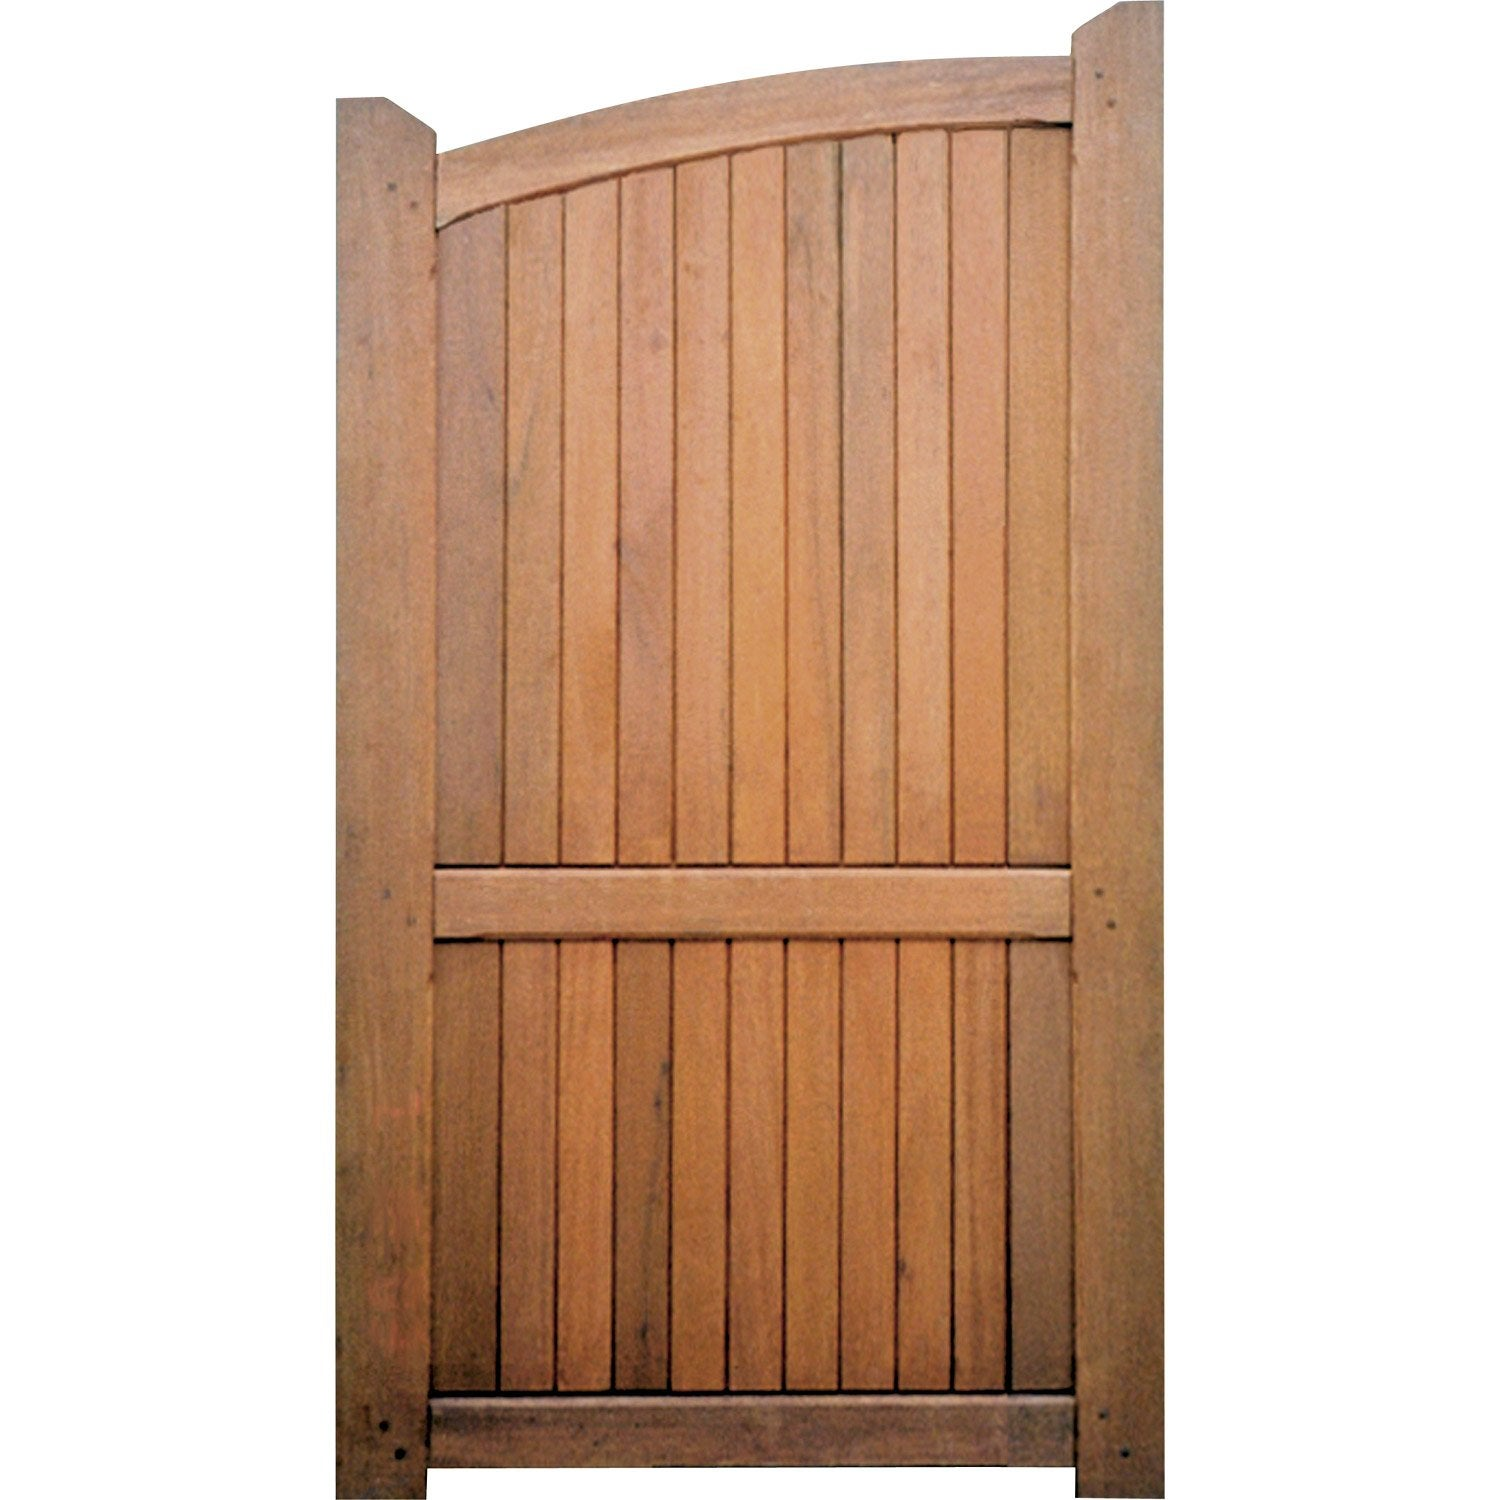 Portillon battant en bois biscarrosse cm leroy merlin for Portillon en pvc pas cher